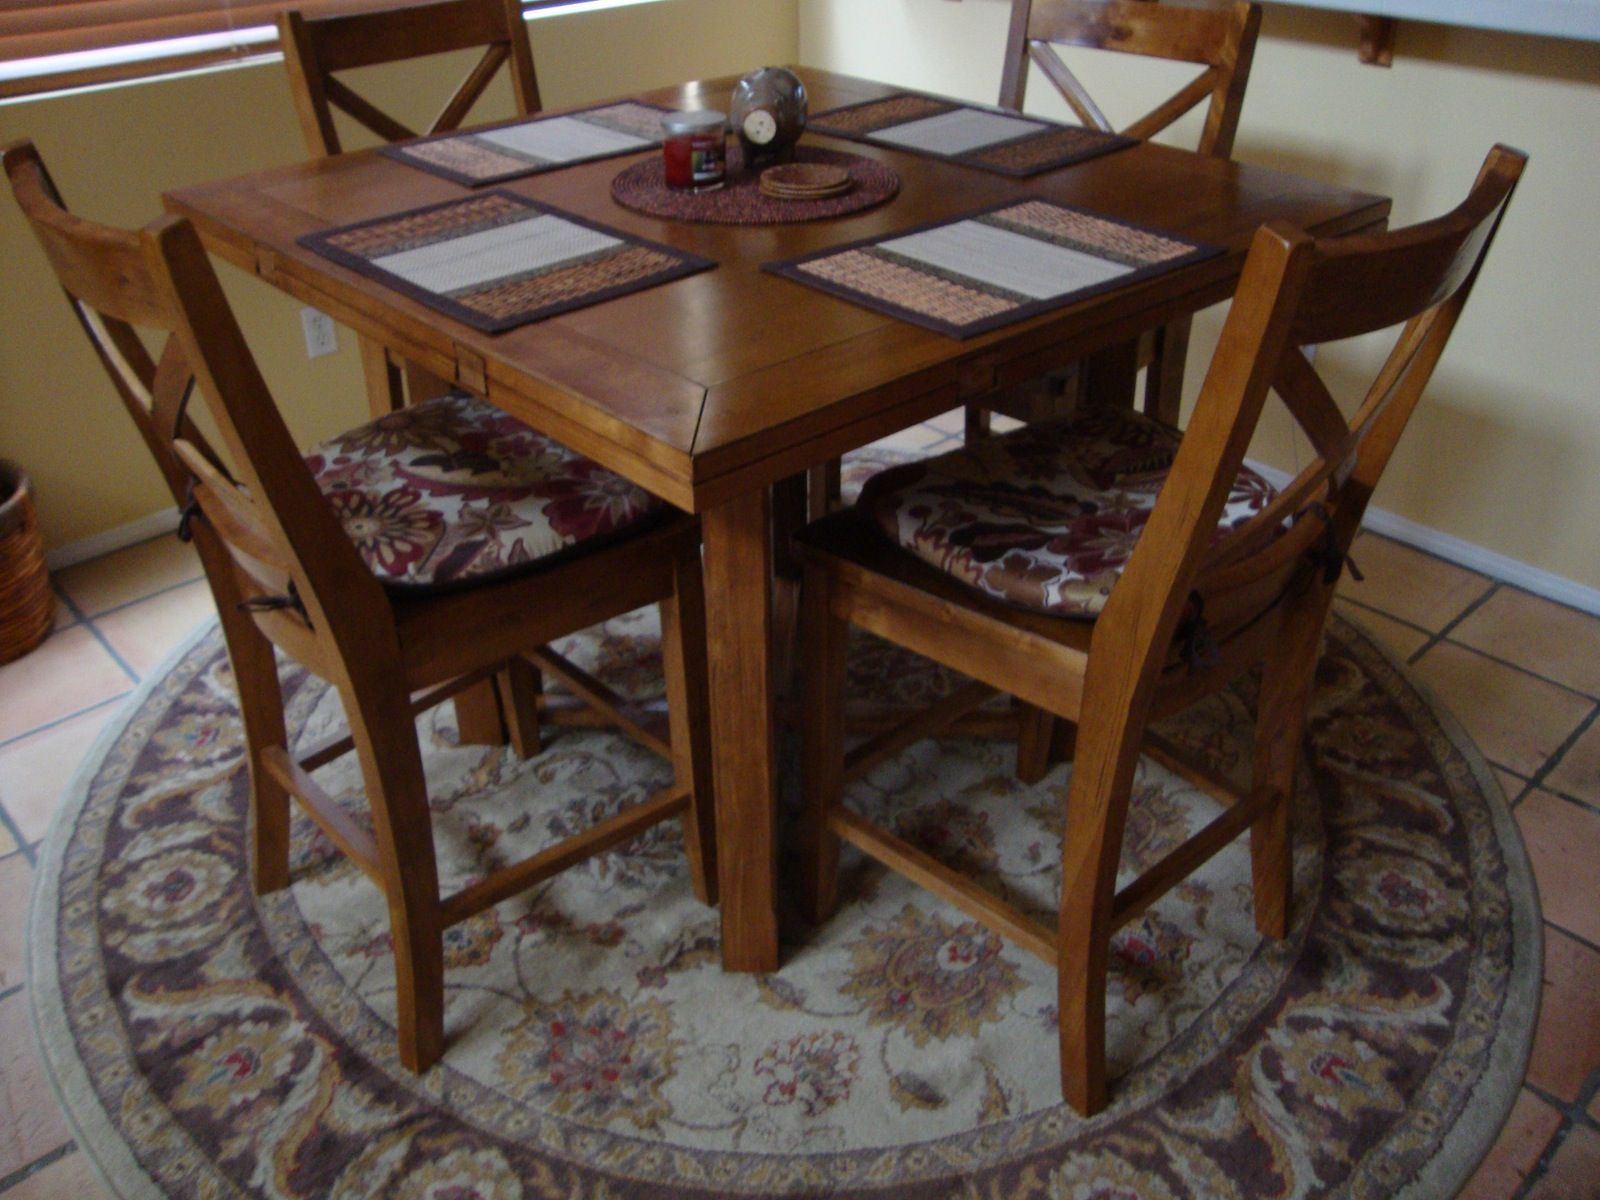 Rugs Under Kitchen Table Yes A Square Table Does Go Well On A Round Rug Round Rugs